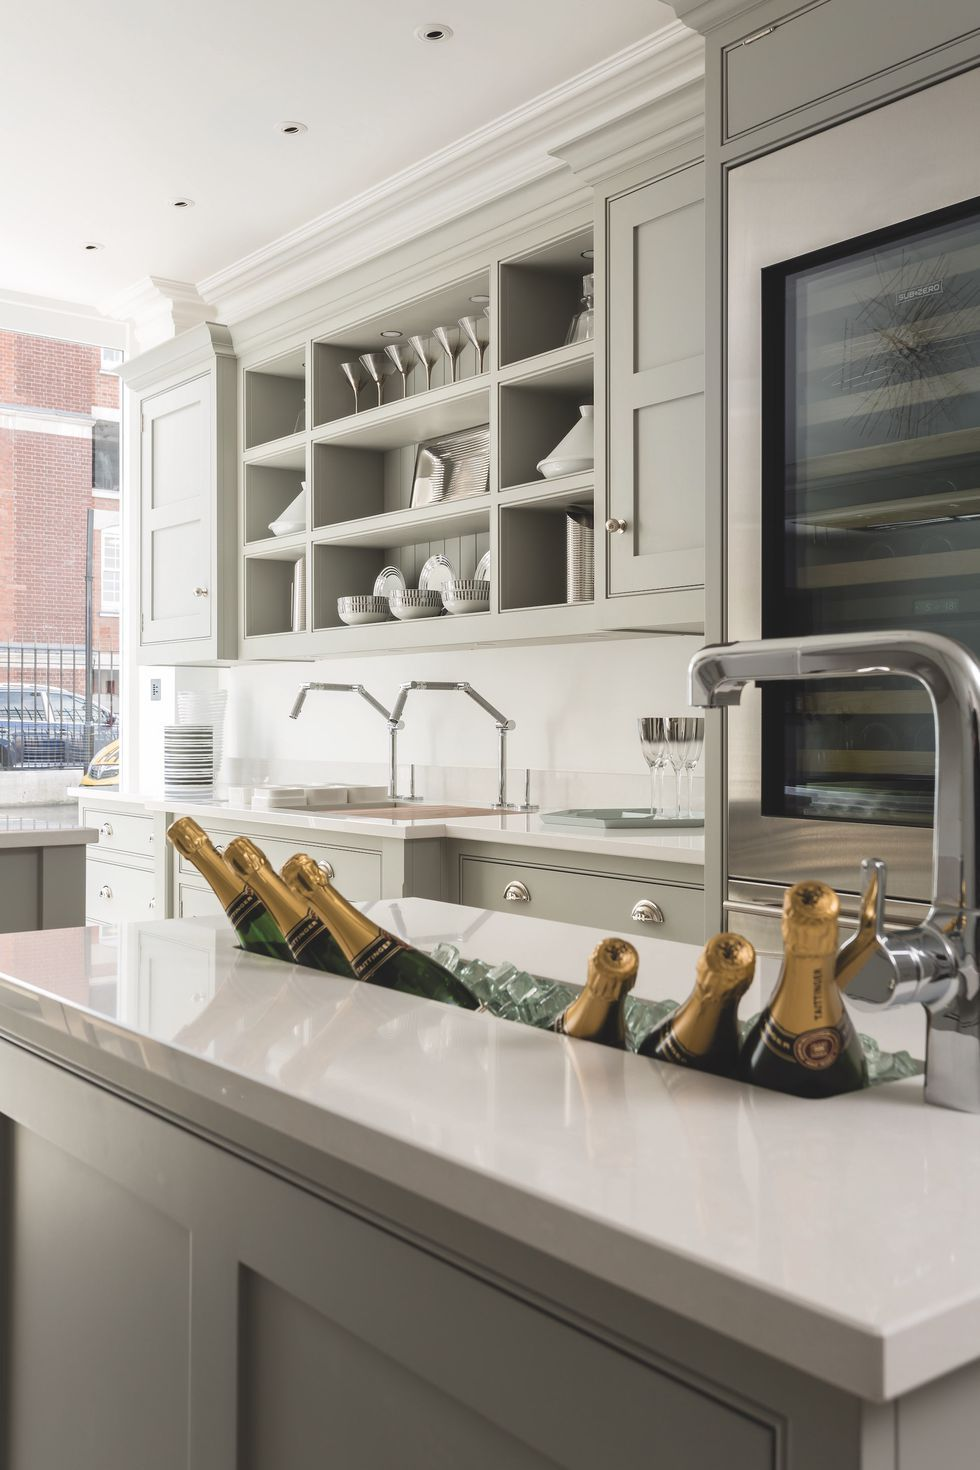 20 Kitchen Trends For 2020 You Need To Know About With Images